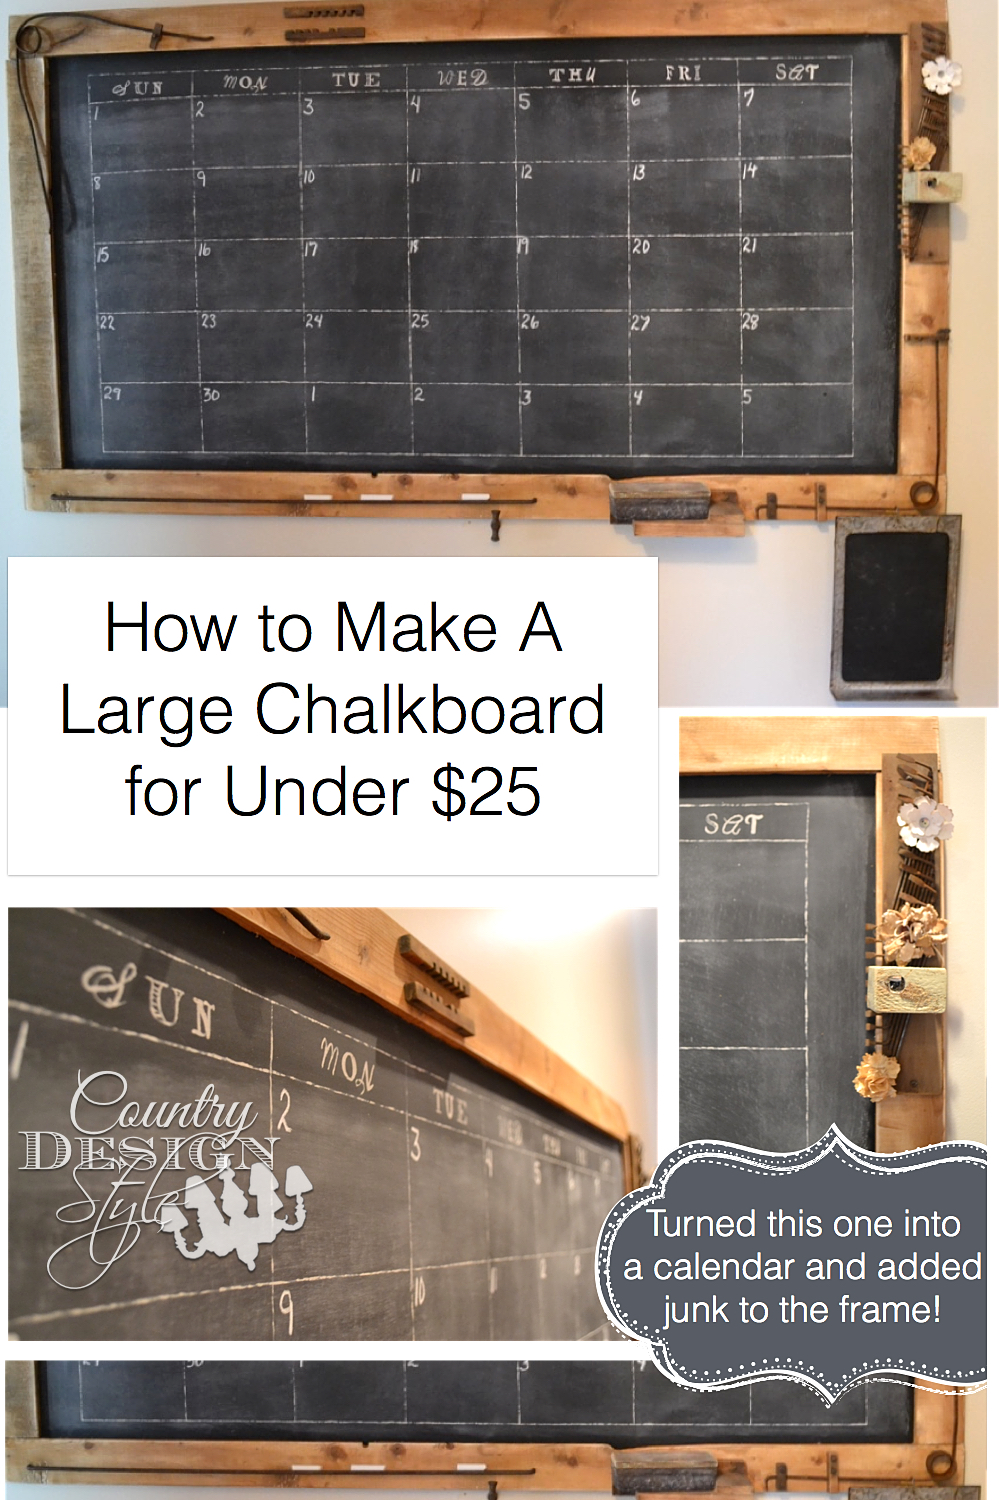 How To Make A Large Chalkboard With Free Plans Download For Under $25 |  Countrydesignstyle. Amazing Pictures